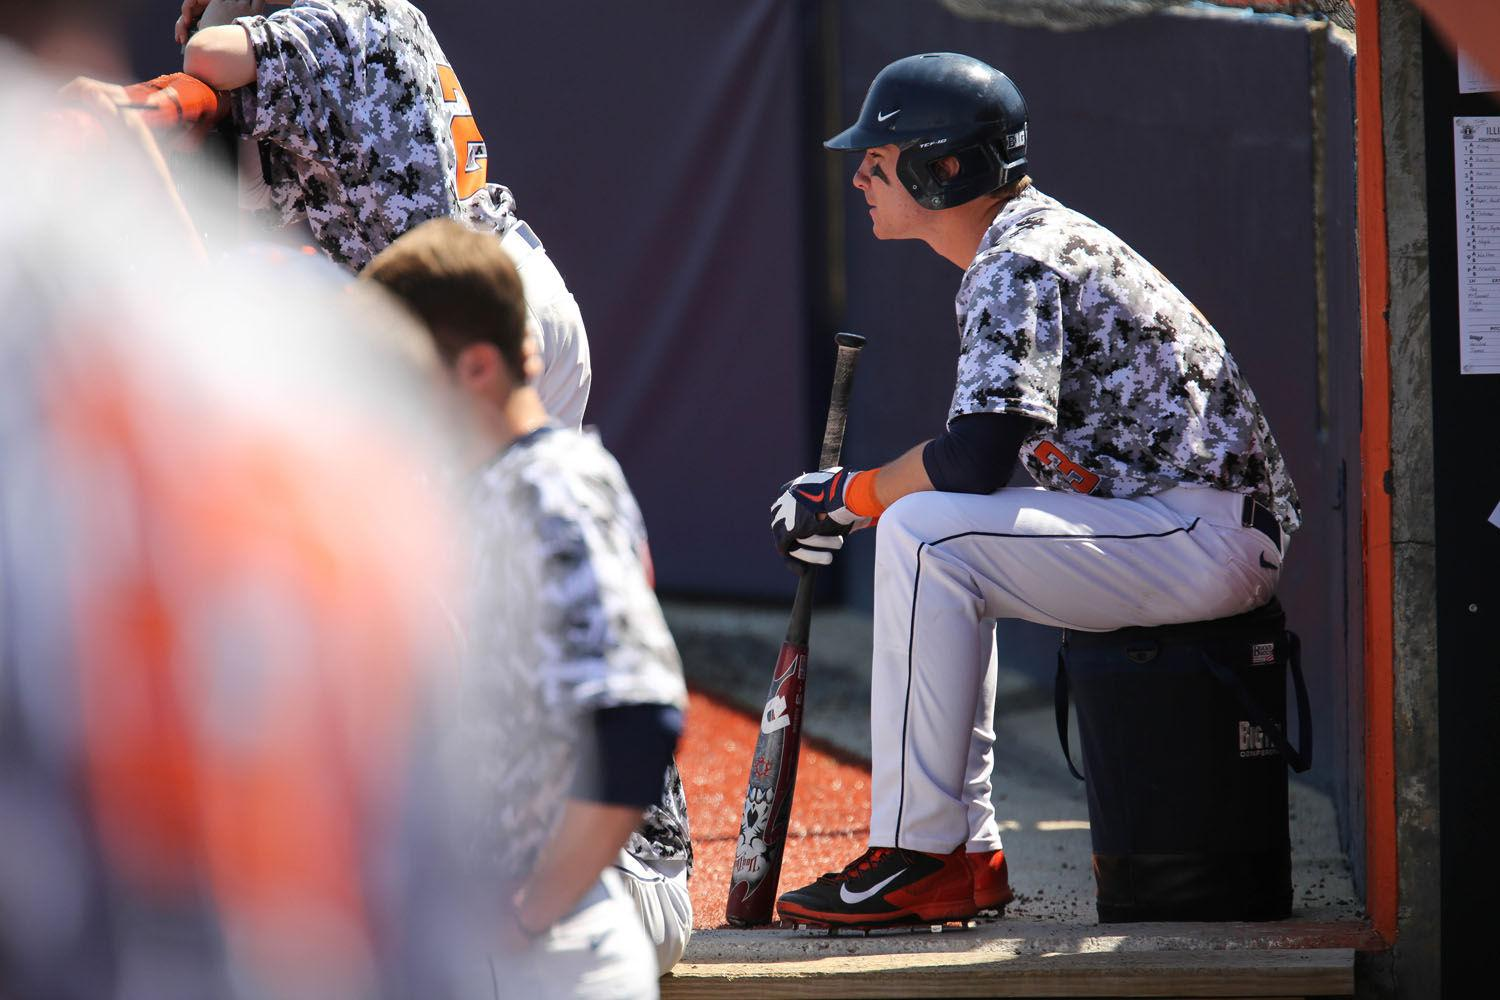 """Illinois' Casey Fletcher waits for his turn at bat during the game against Michigan State """"I felt like we had all the momentum after tying it in the ninth,"""" Fletcher said of Illinois' tie on Sunday to Florida Gulf Coast."""